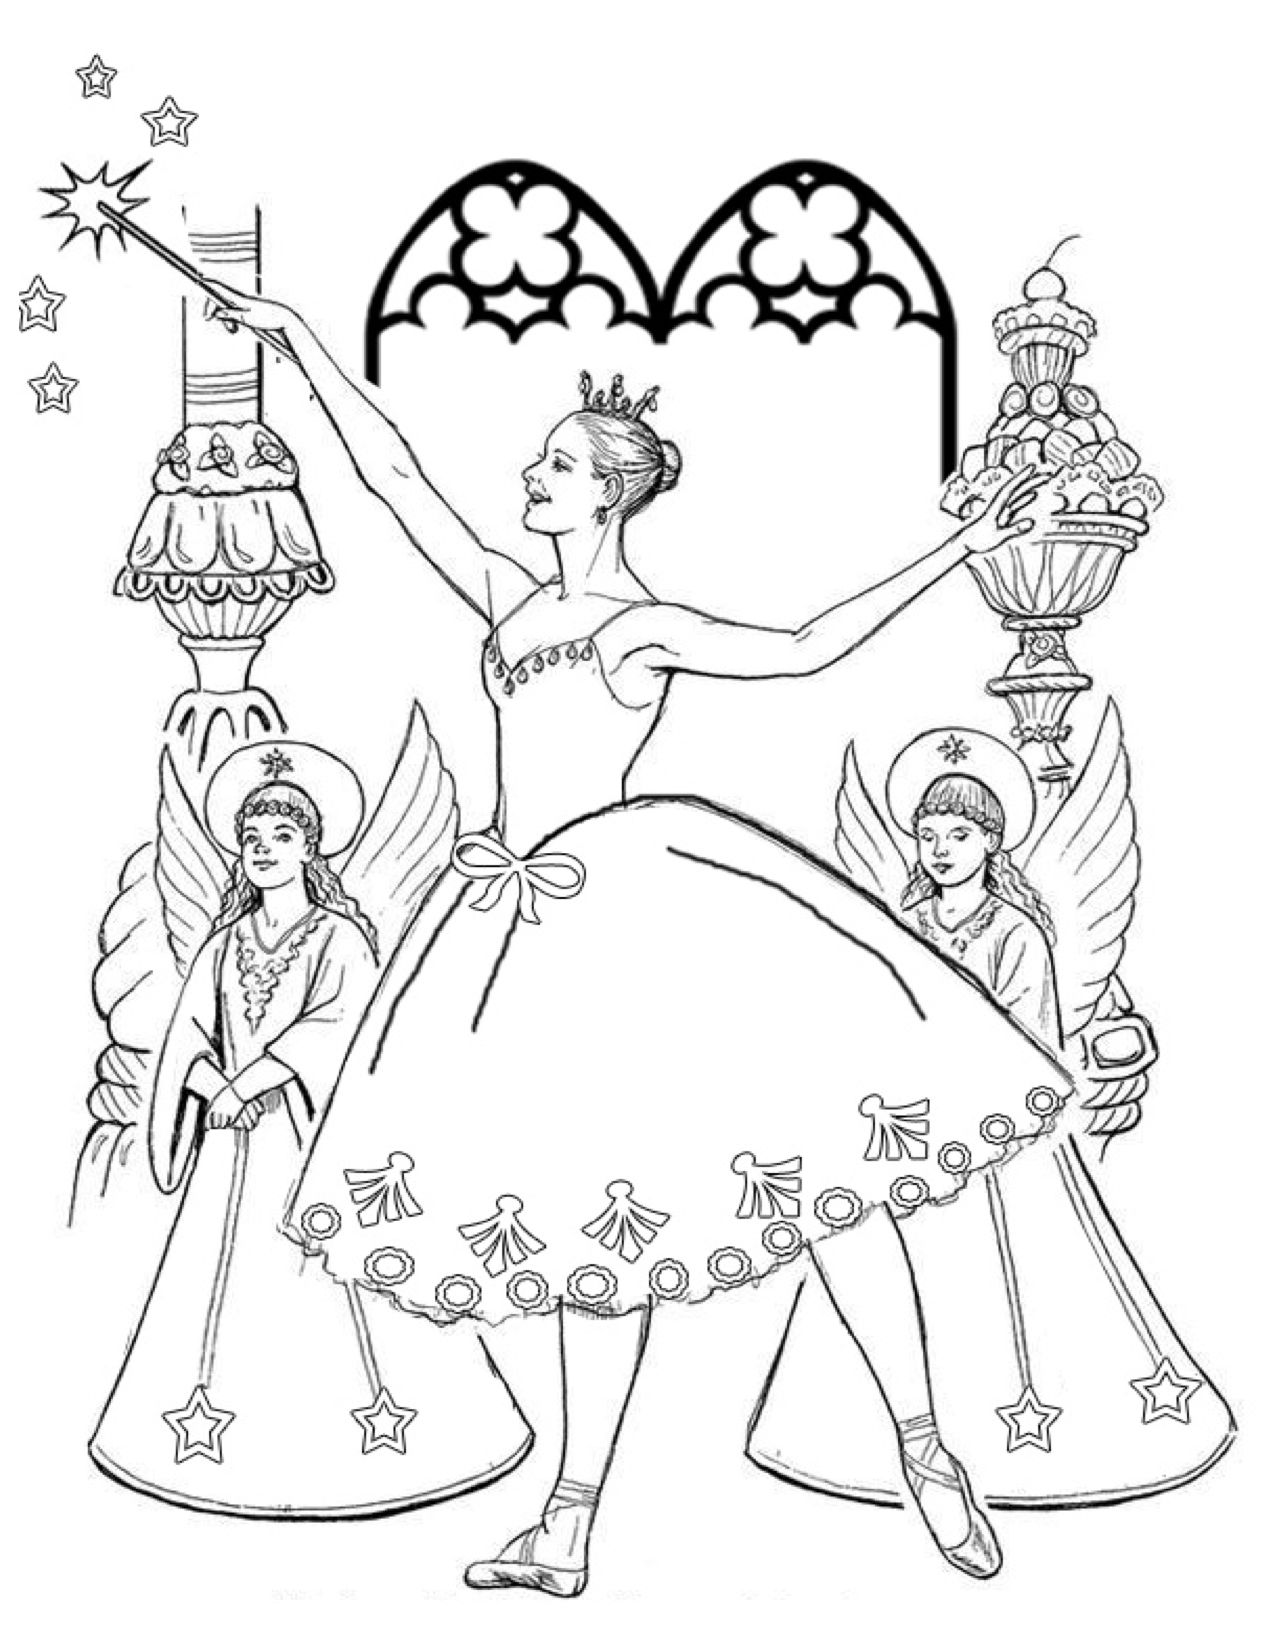 sugar plum fairy coloring page sugar plum fairy drawing at getdrawings free download page fairy sugar coloring plum